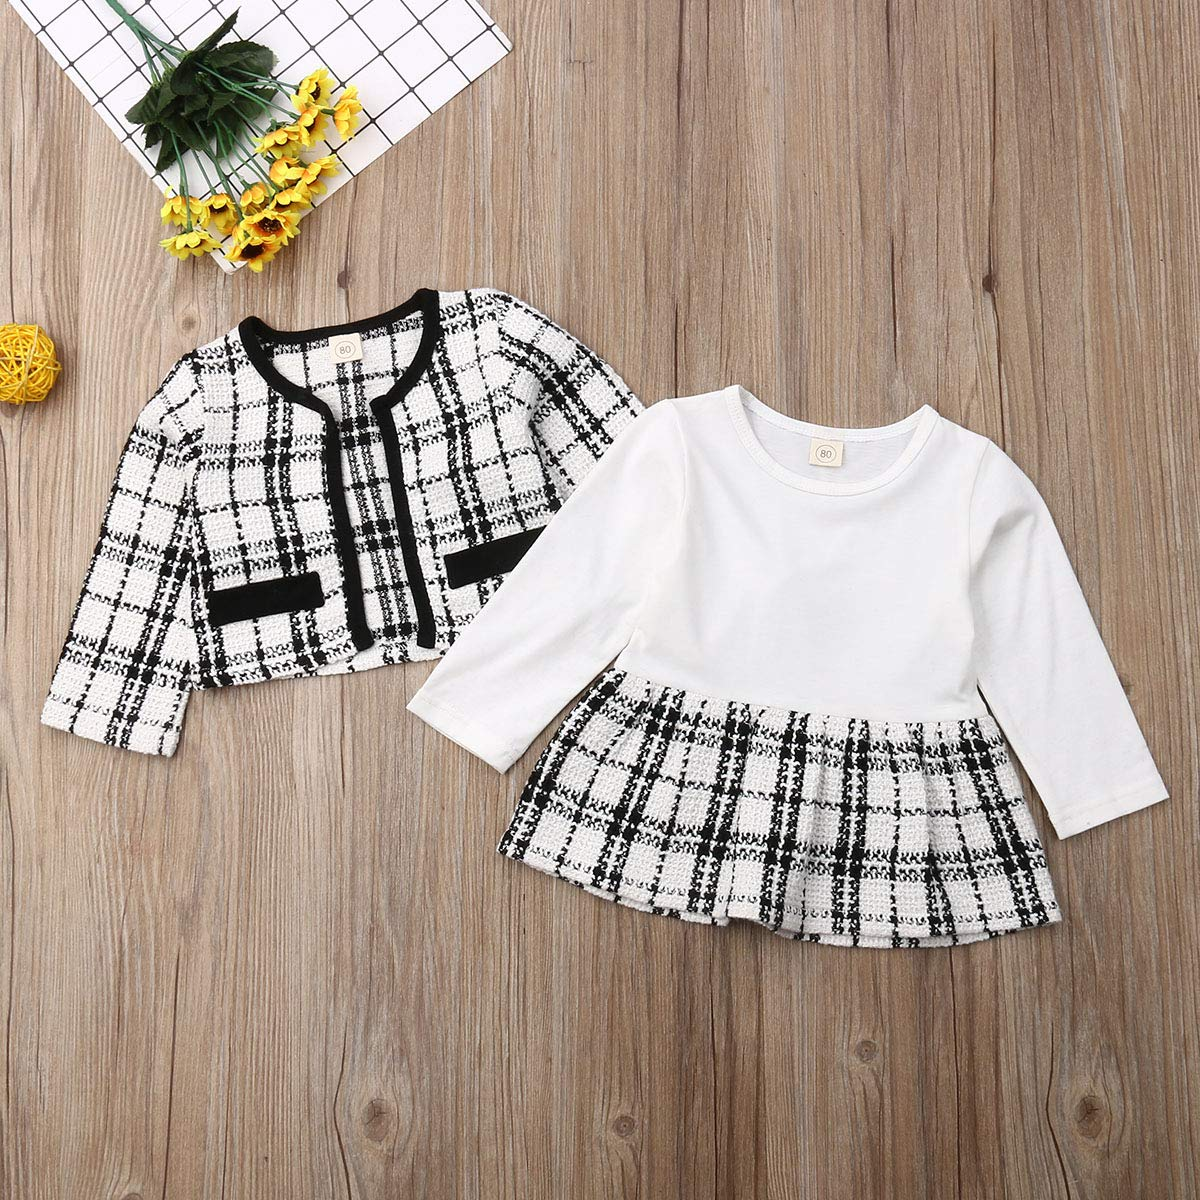 Fall Winter Toddler Kid Baby Gir Cute Long Sleeve Jacket Coat Plaid Dress Tutu Skirt Party Clothes Casual Outfit